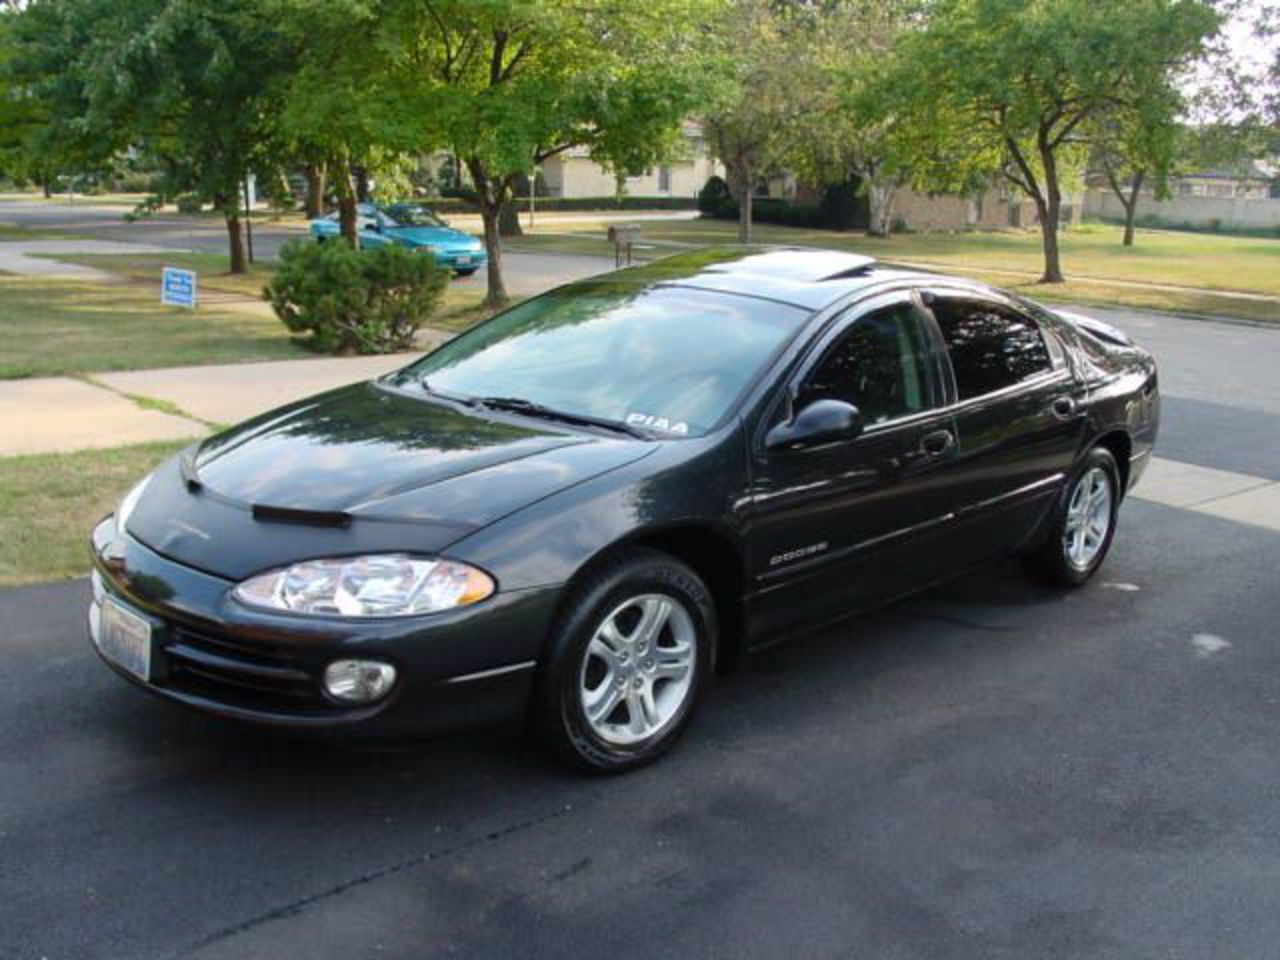 Topworldauto Photos Of Dodge Intrepid Es Photo Galleries 99 Wiring Diagram 1999 4 Dr Sedan Picture 0 Pictures No Videos 8